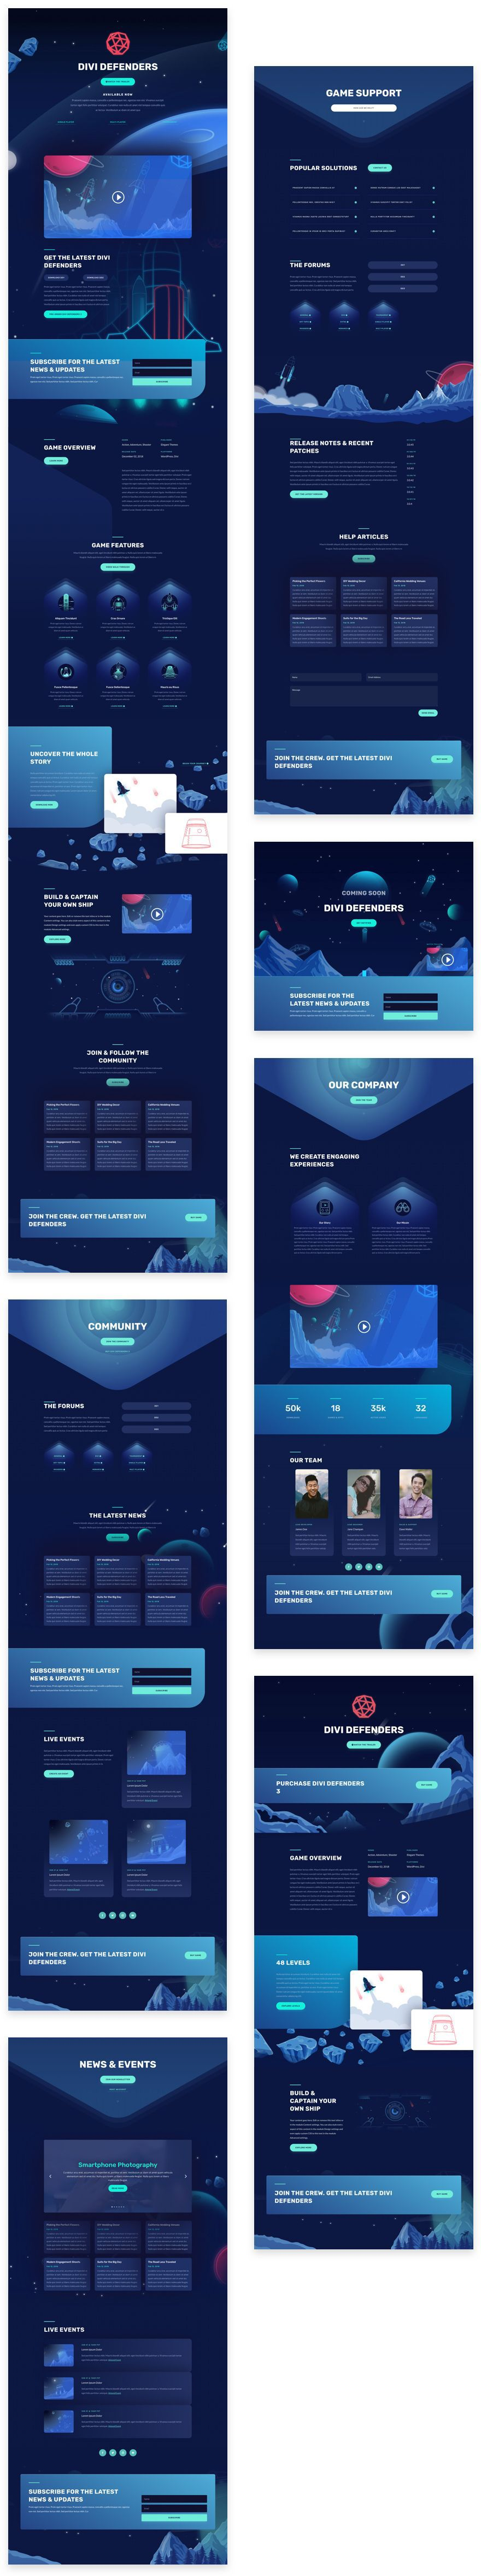 Video Game Divi Layout Pack